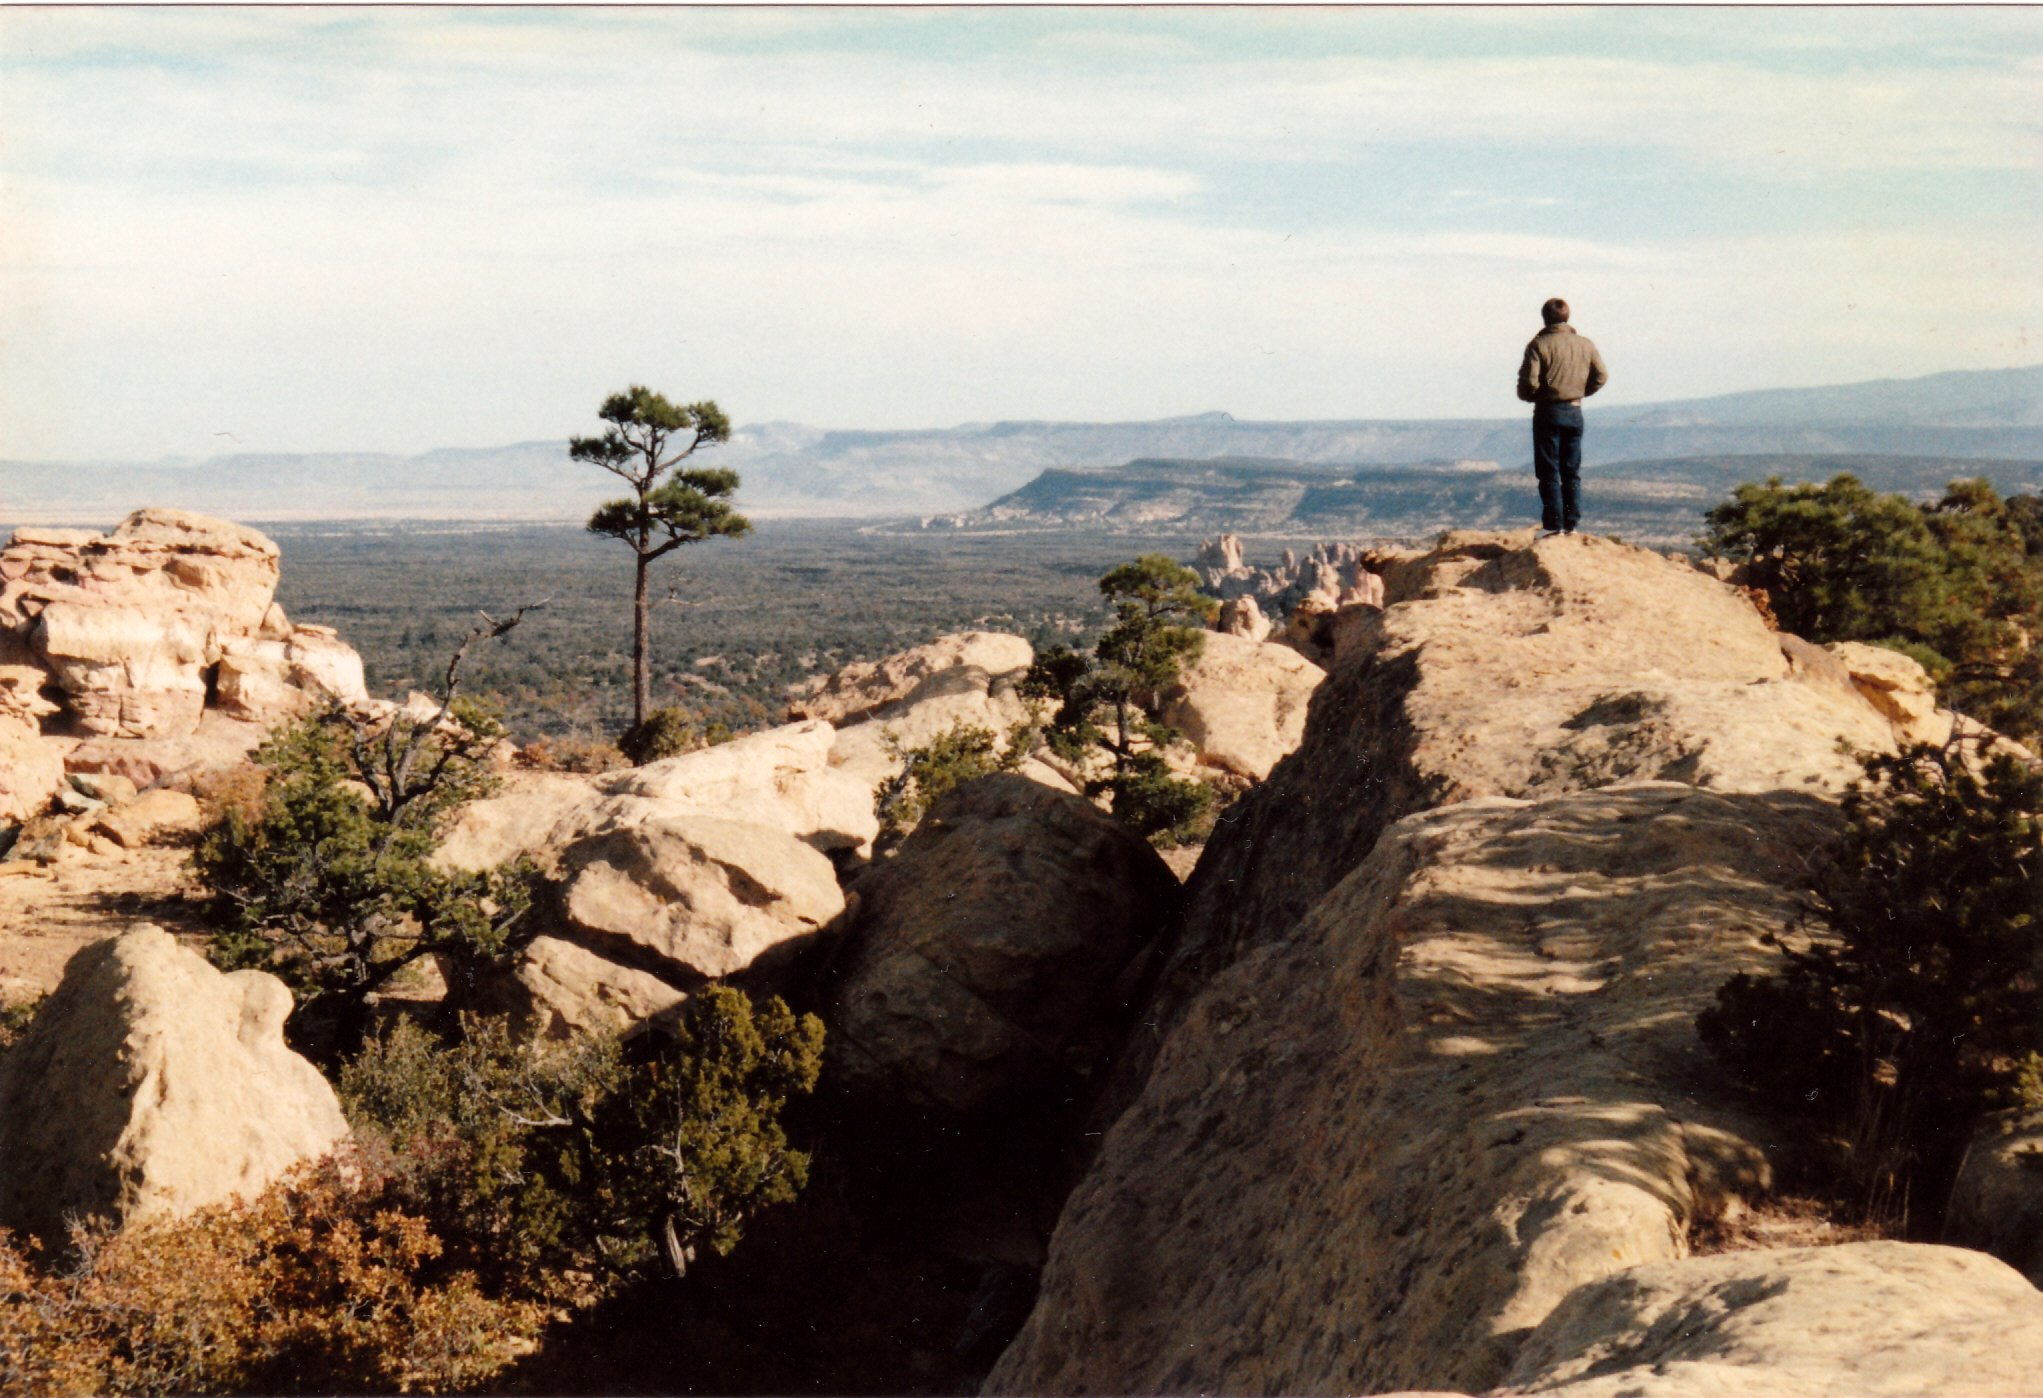 a cliff high above the Malpais plain in northwest New Mexico